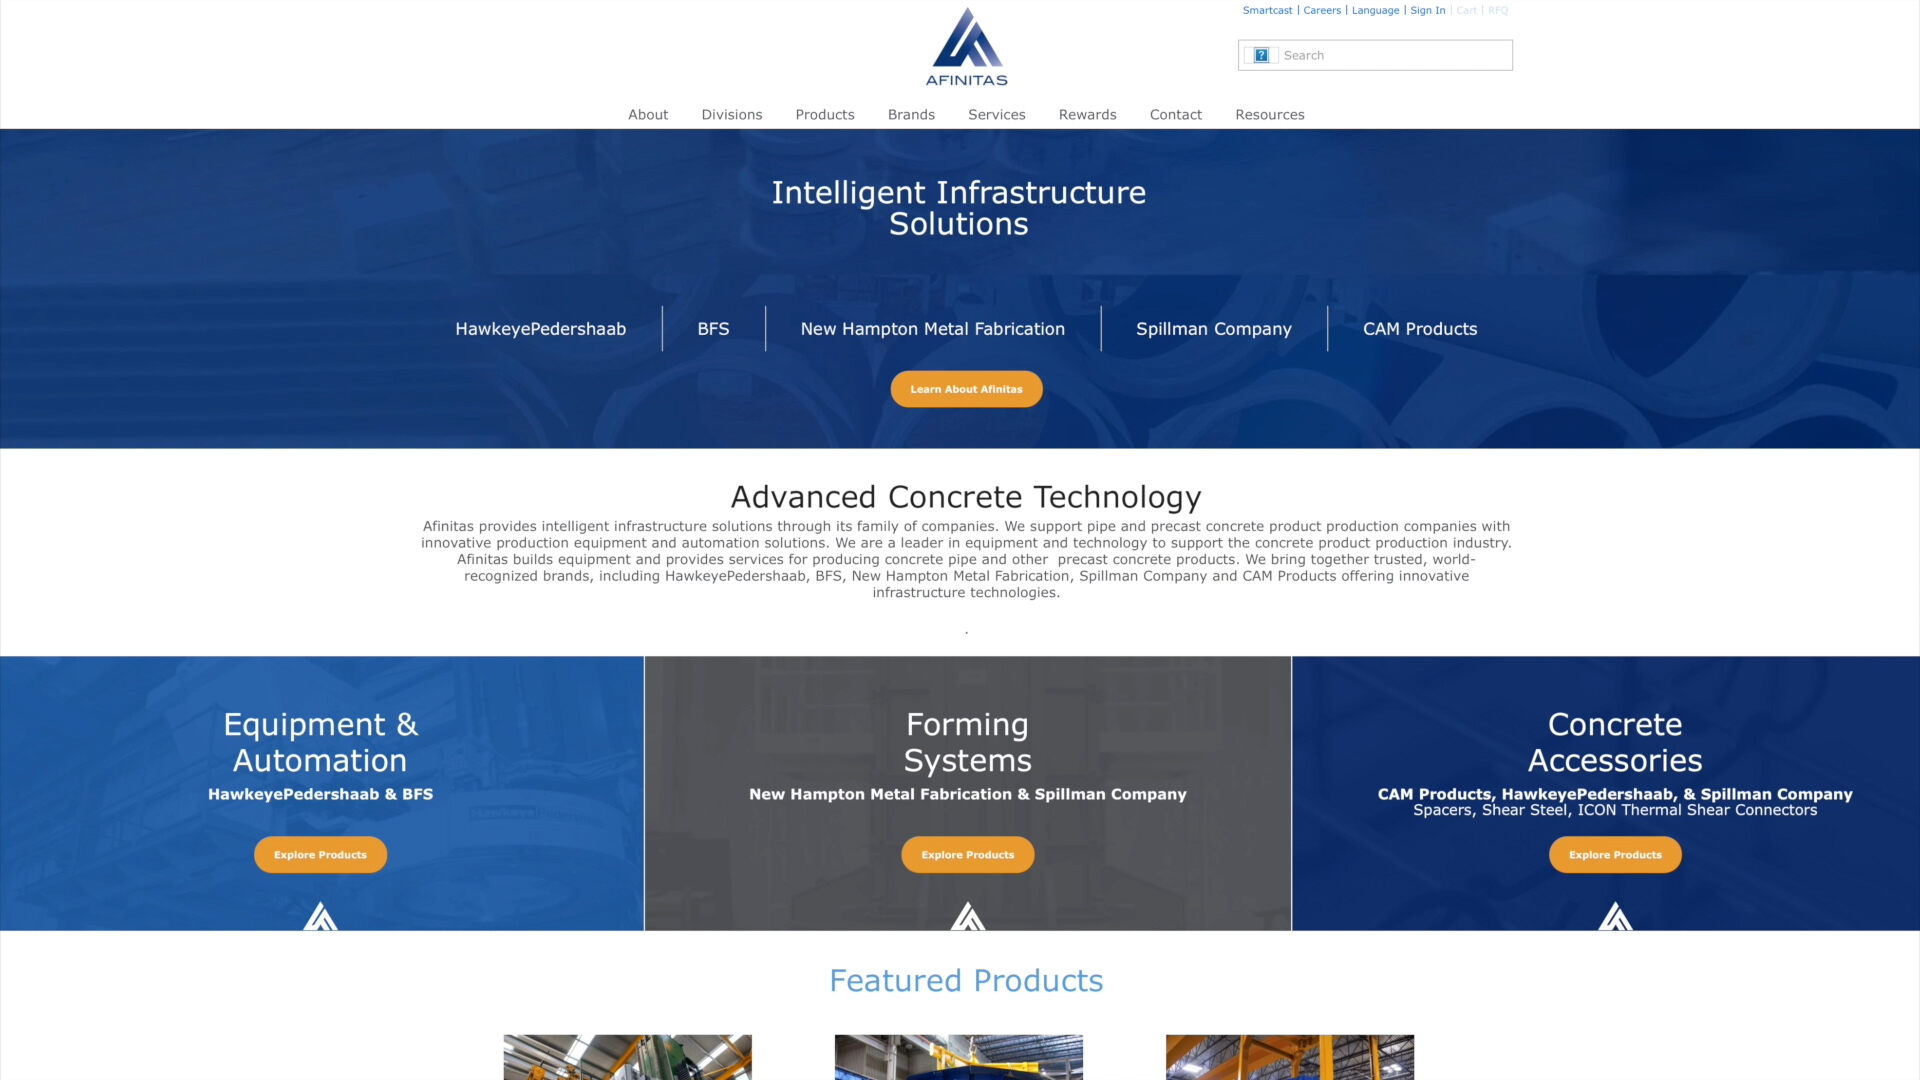 Afinitas Aligns into Three Business Units and Launches New Website